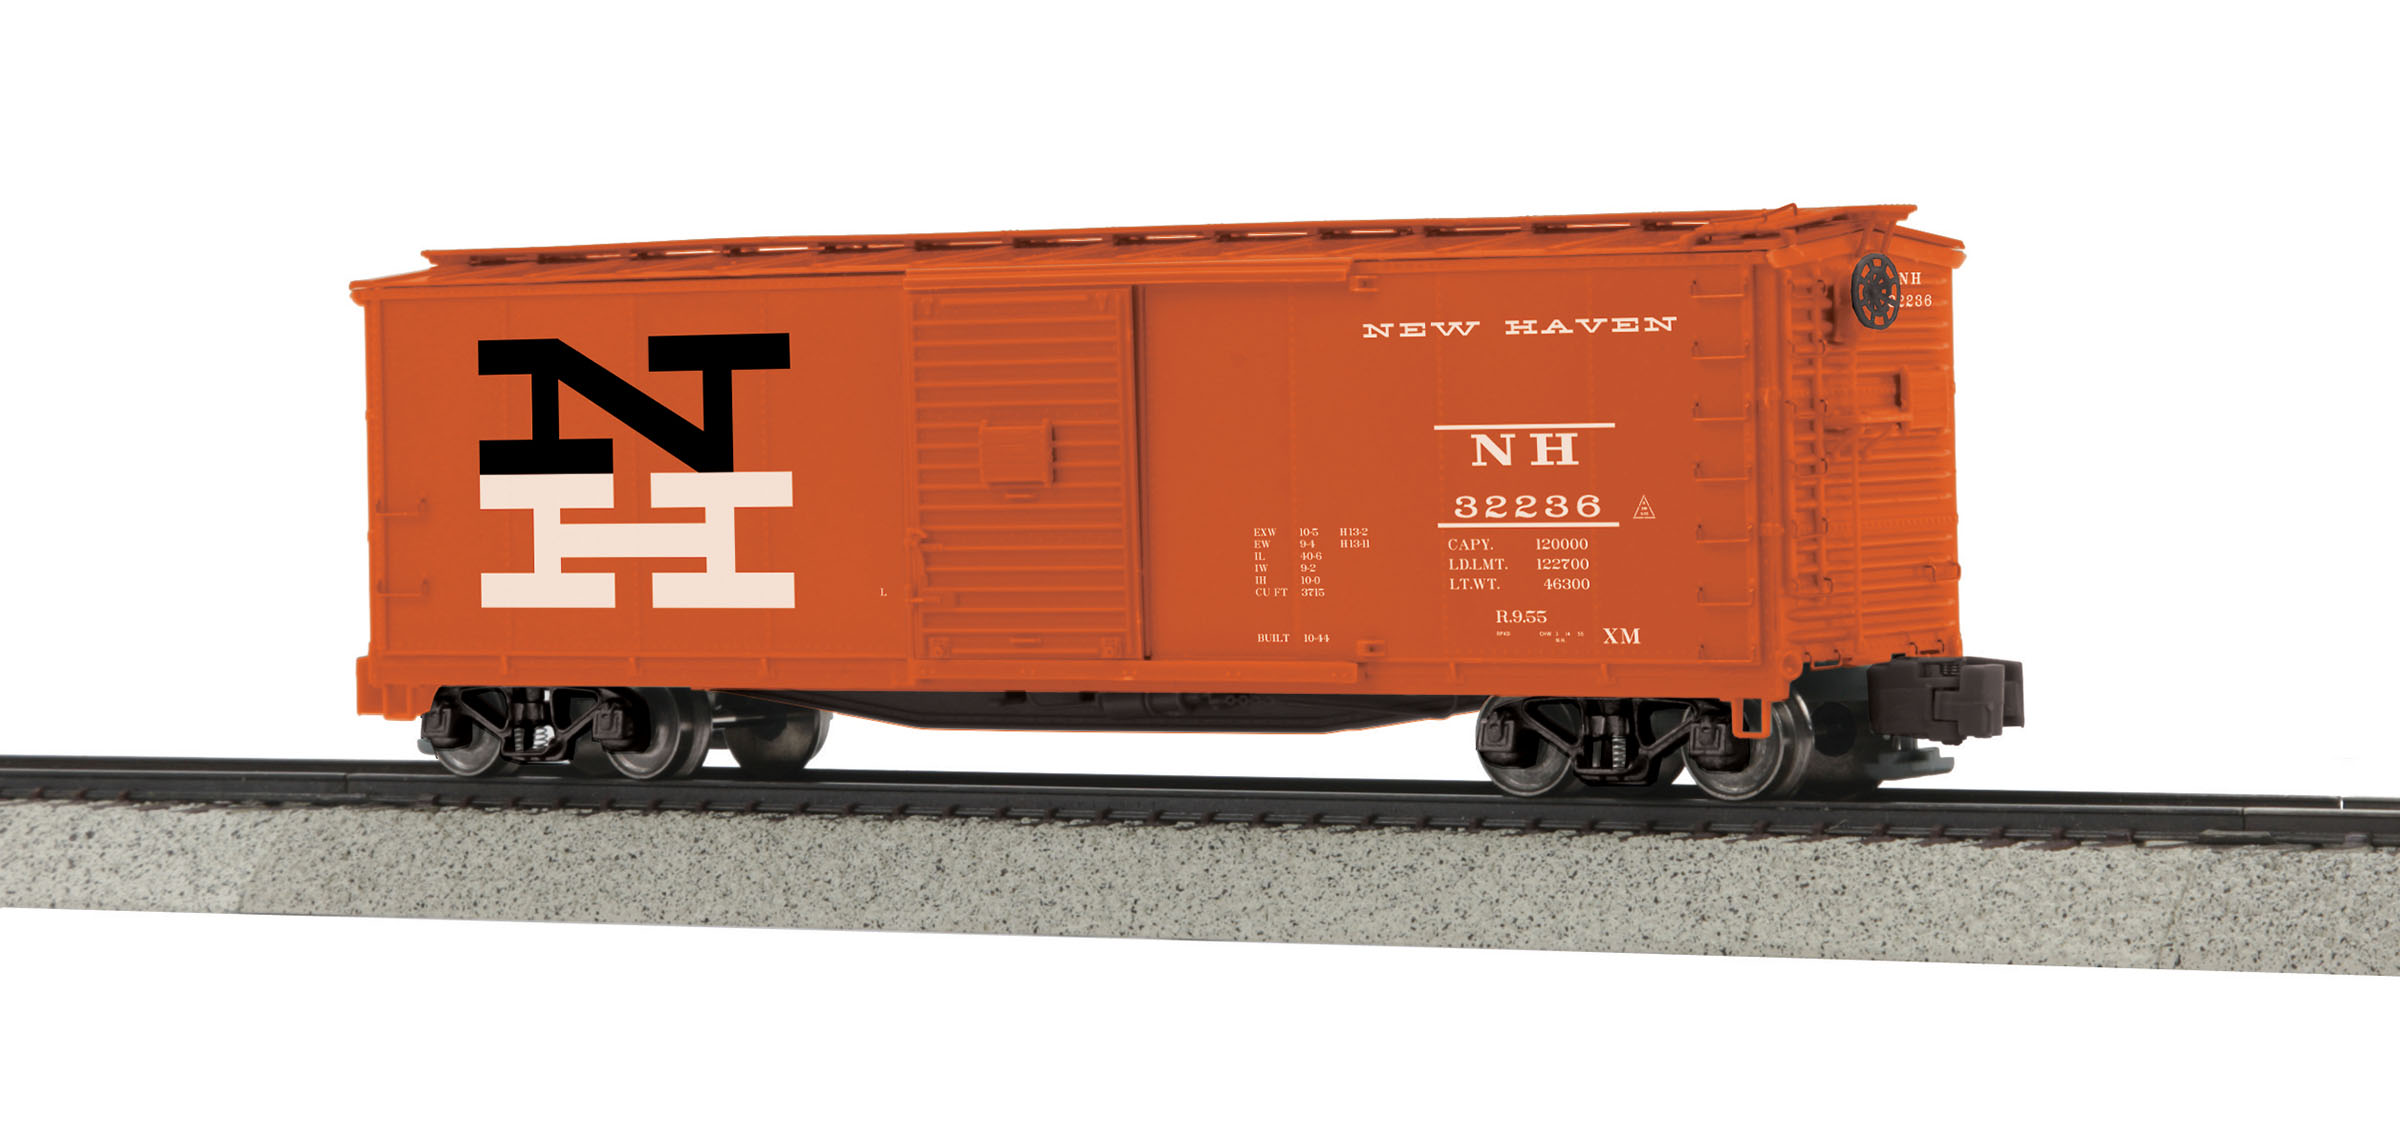 MTH 3574035 Rebuilt Steel Box Car Hi-Rail Wheels NH #32236